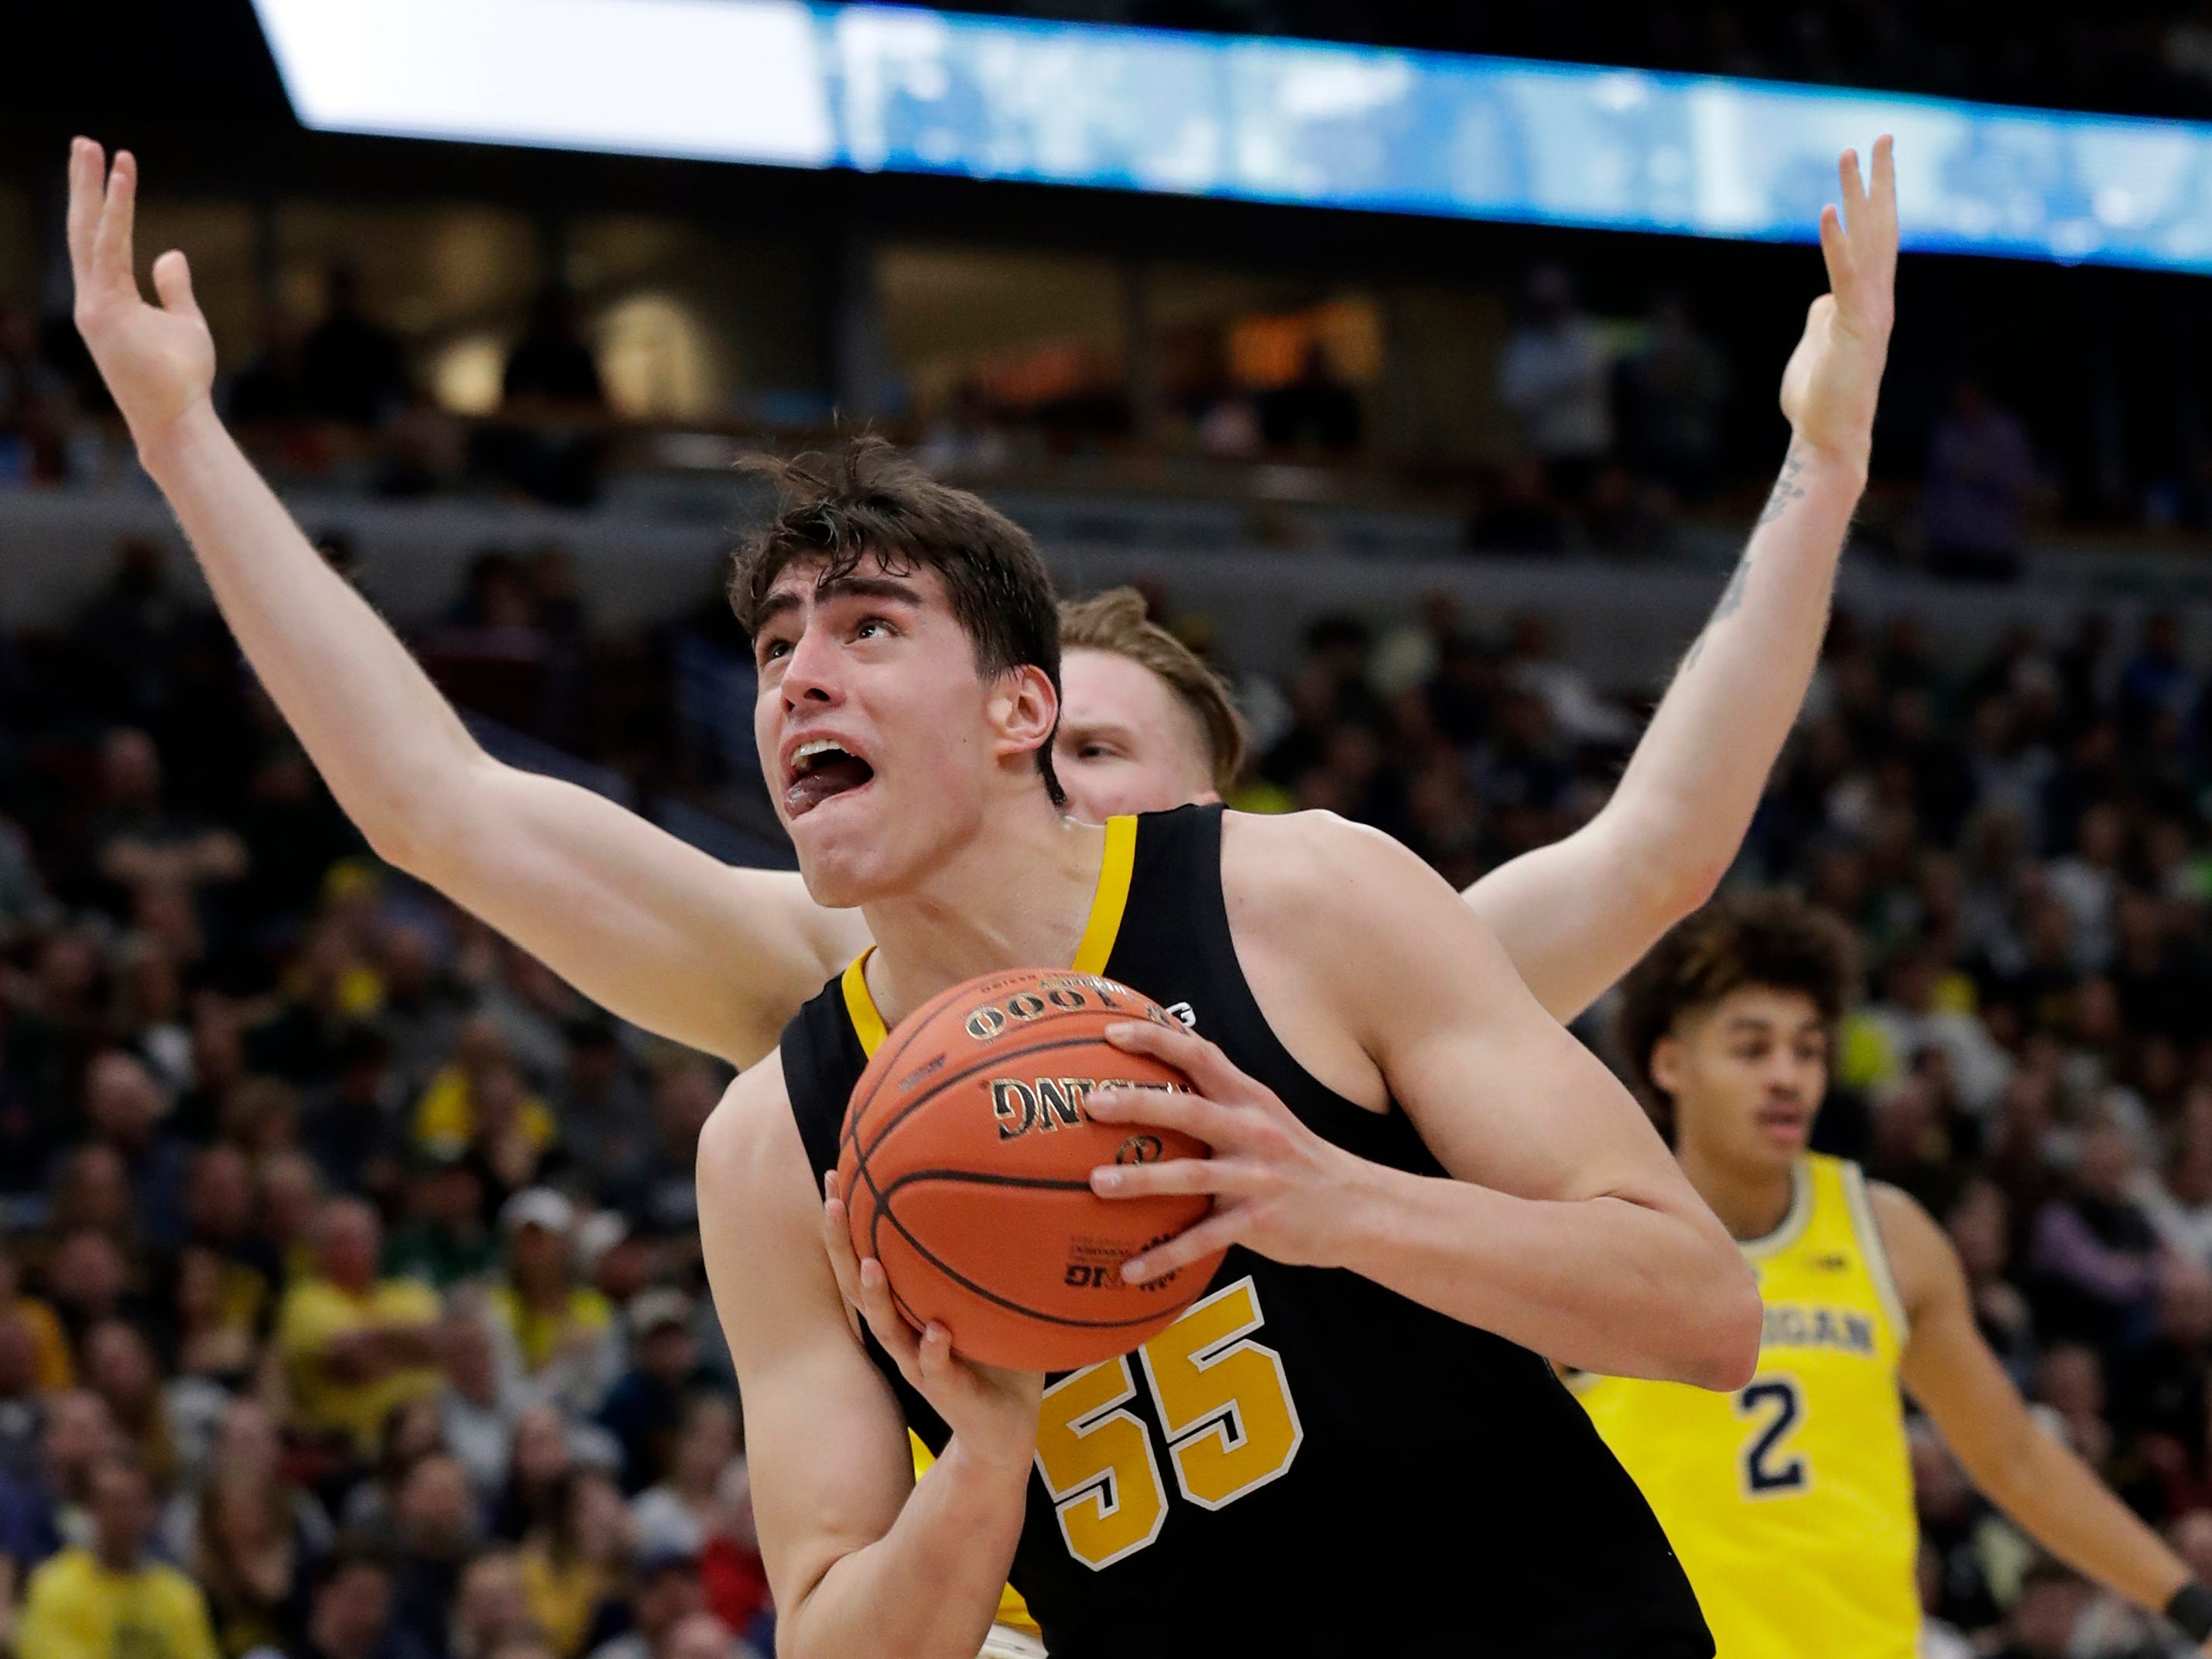 Iowa's Luka Garza (55) drives against Michigan's Ignas Brazdeikis during the first half of an NCAA college basketball game in the quarterfinals of the Big Ten Conference tournament, Friday, March 15, 2019, in Chicago.